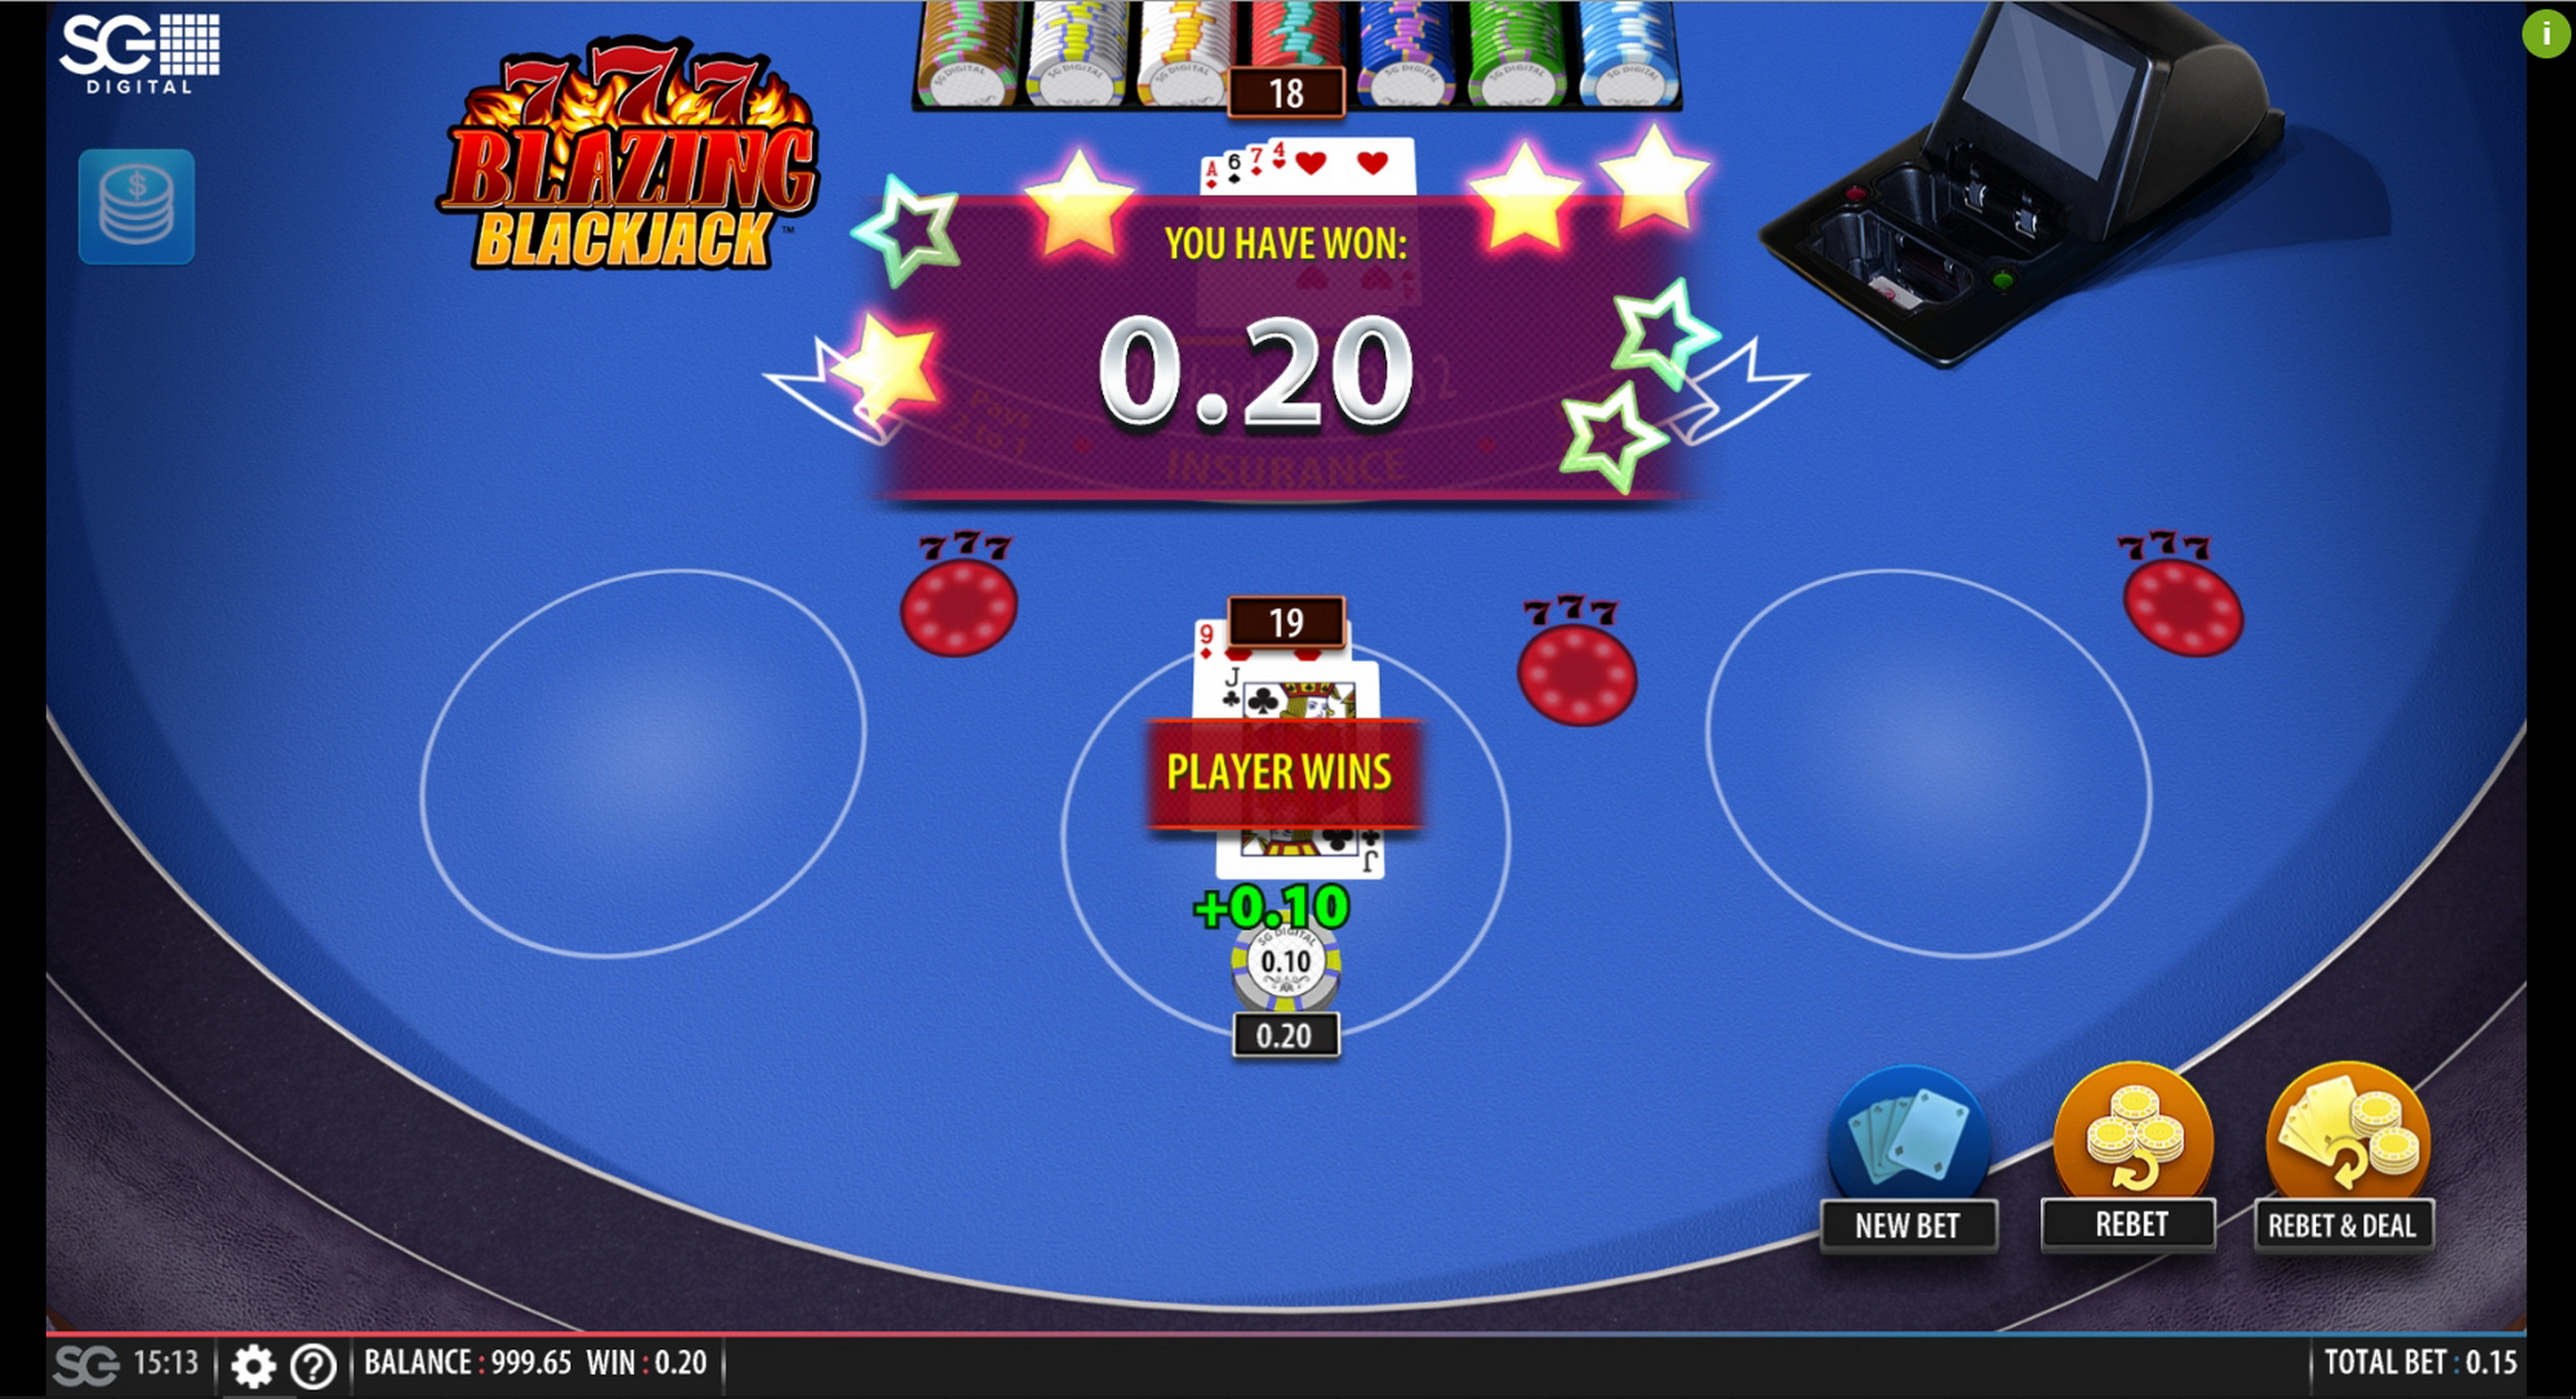 Win Money in Blazing 7's Blackjack Free Slot Game by Shuffle Master